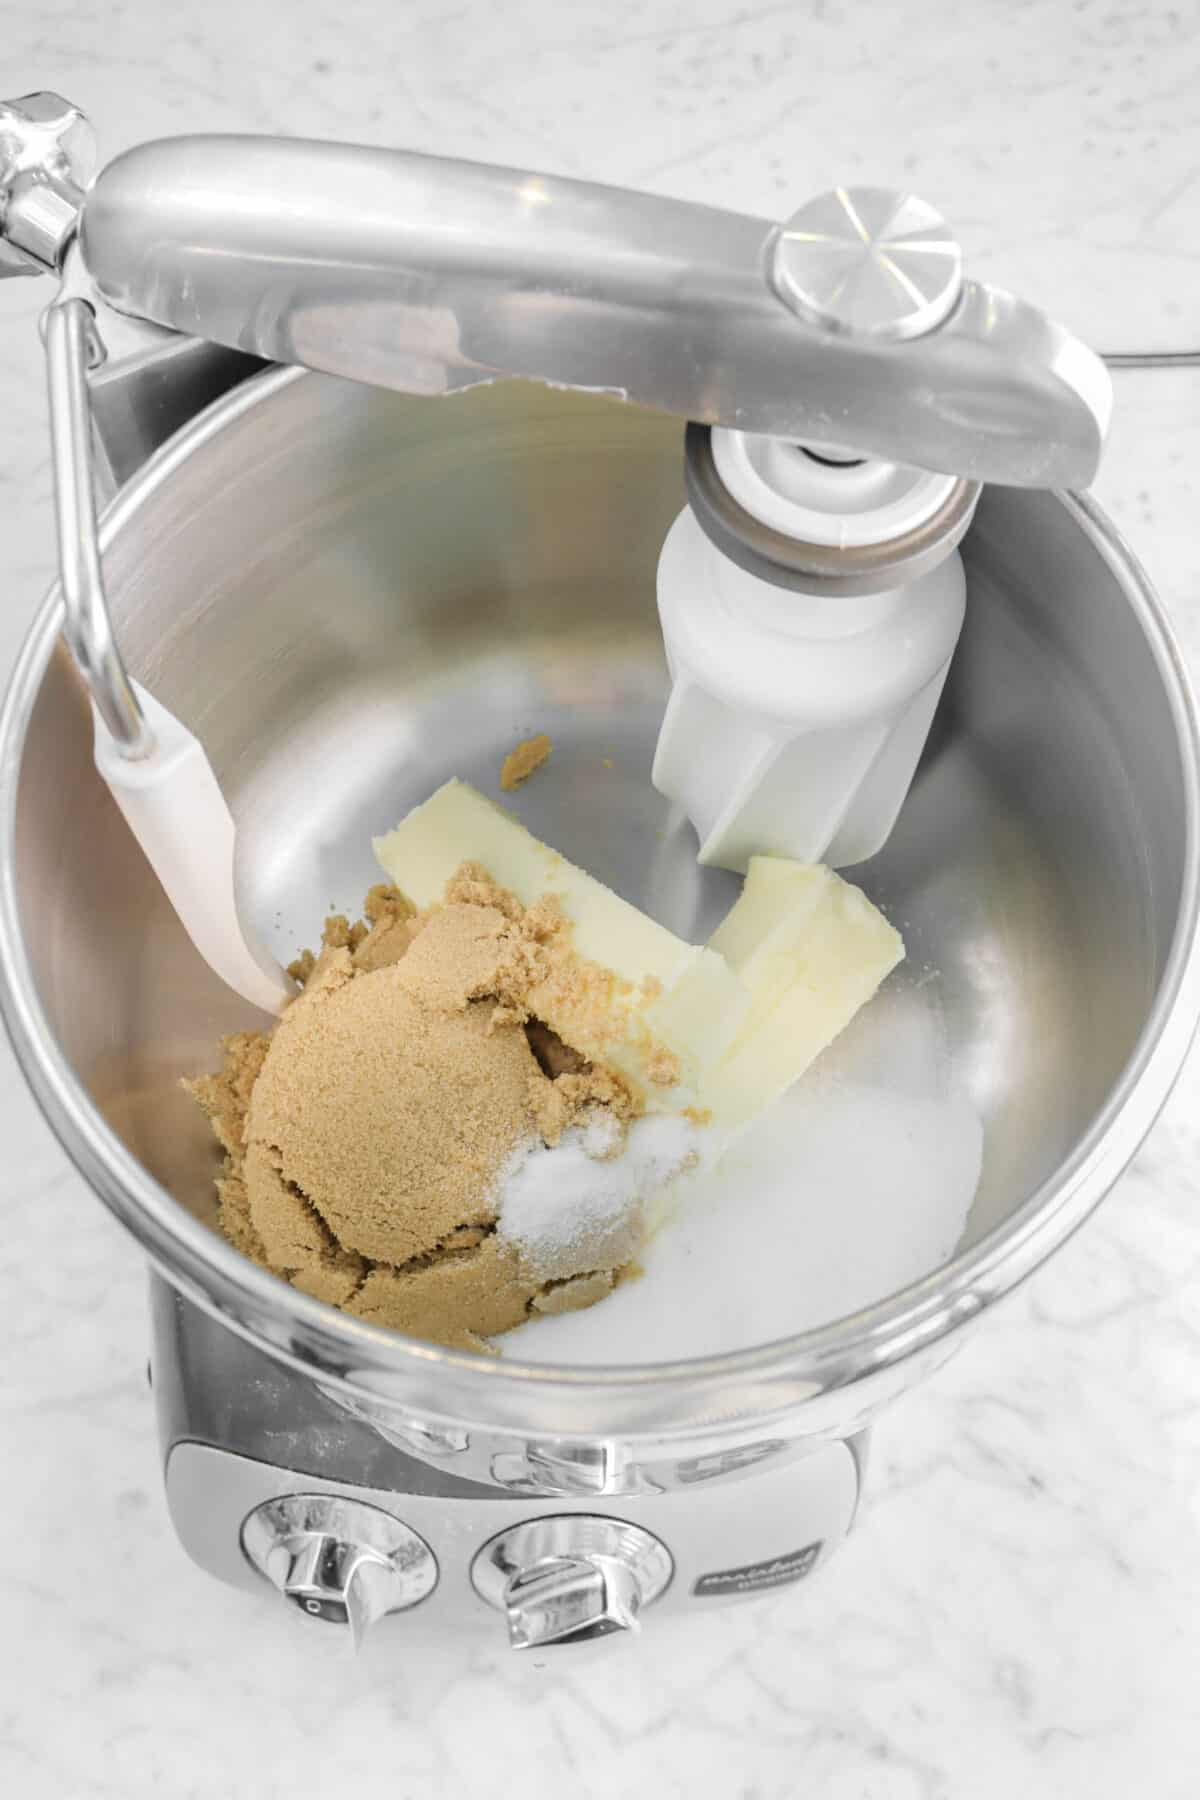 brown sugar, white sugar, and butter in a mixer